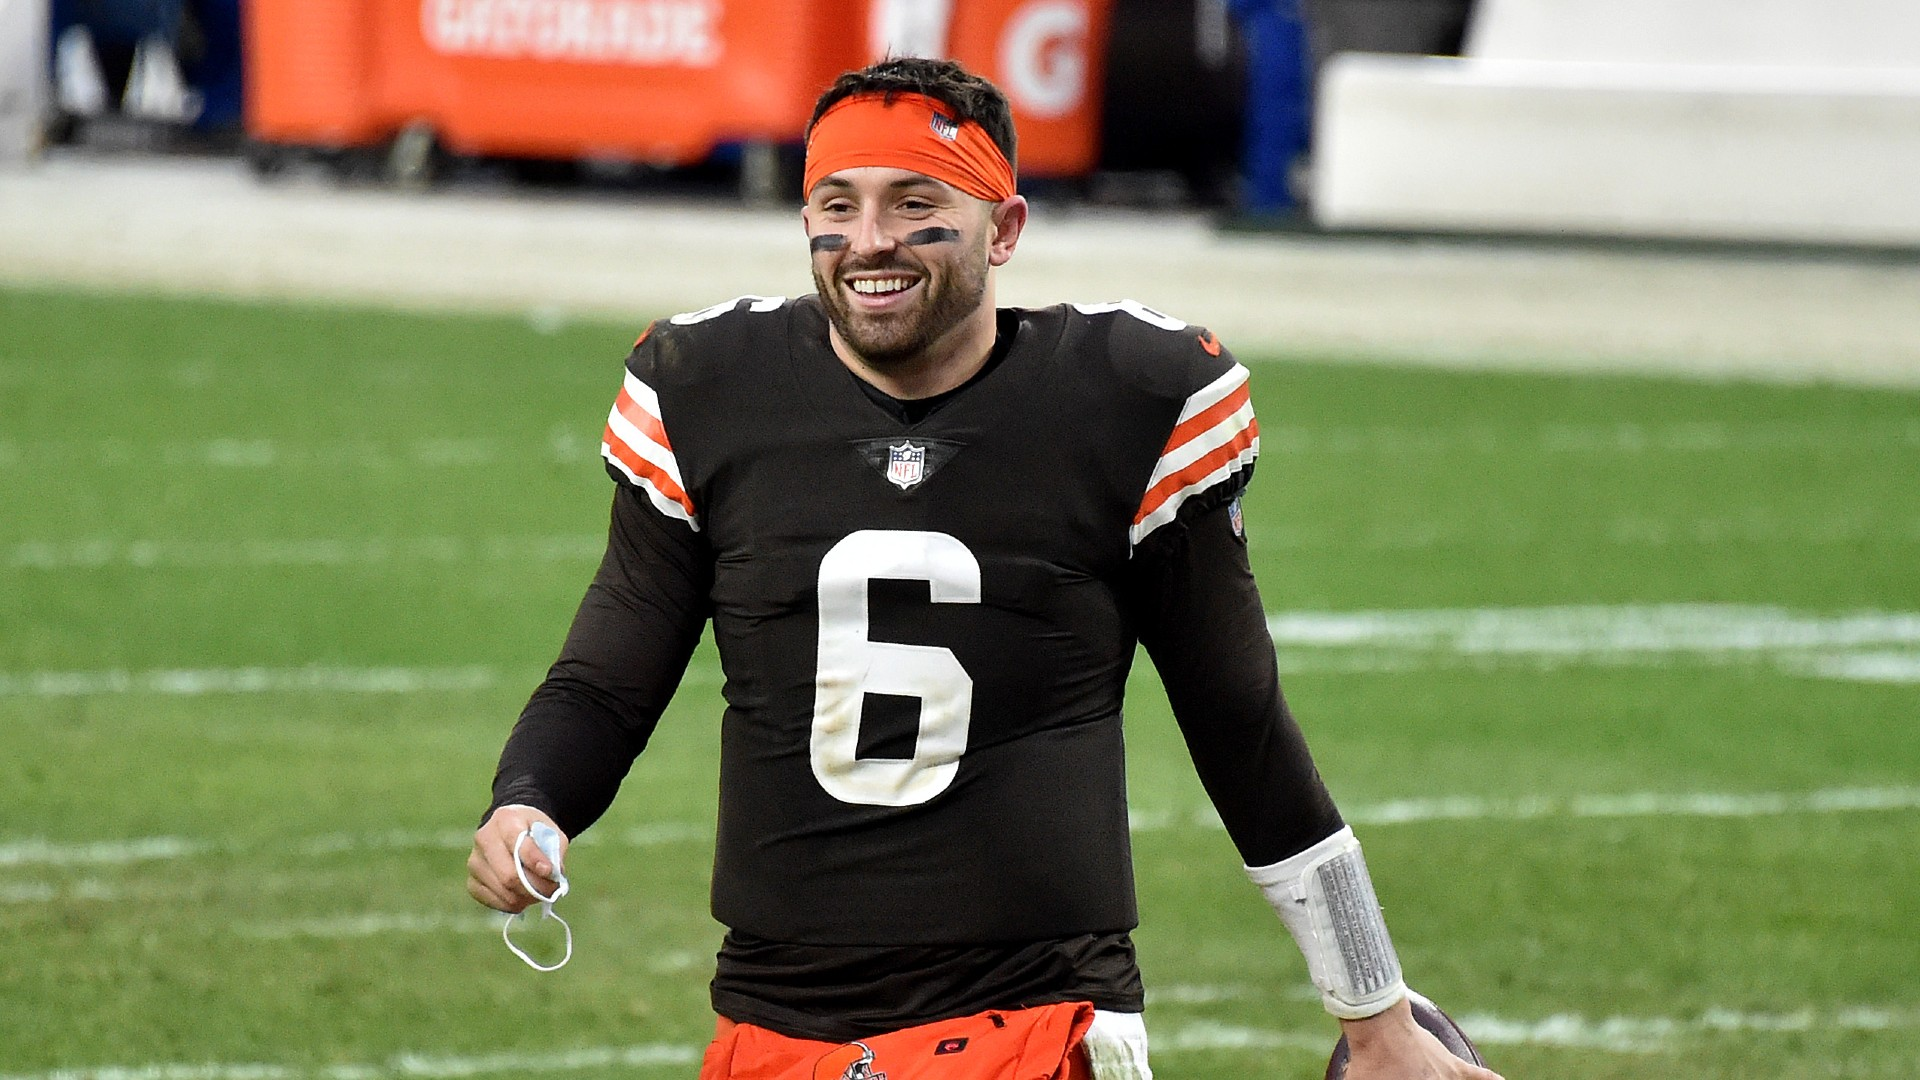 Baker Mayfield Phone Number, Email, House Address, Contact Information, Biography, Wiki, Whatsapp and More Profile Details